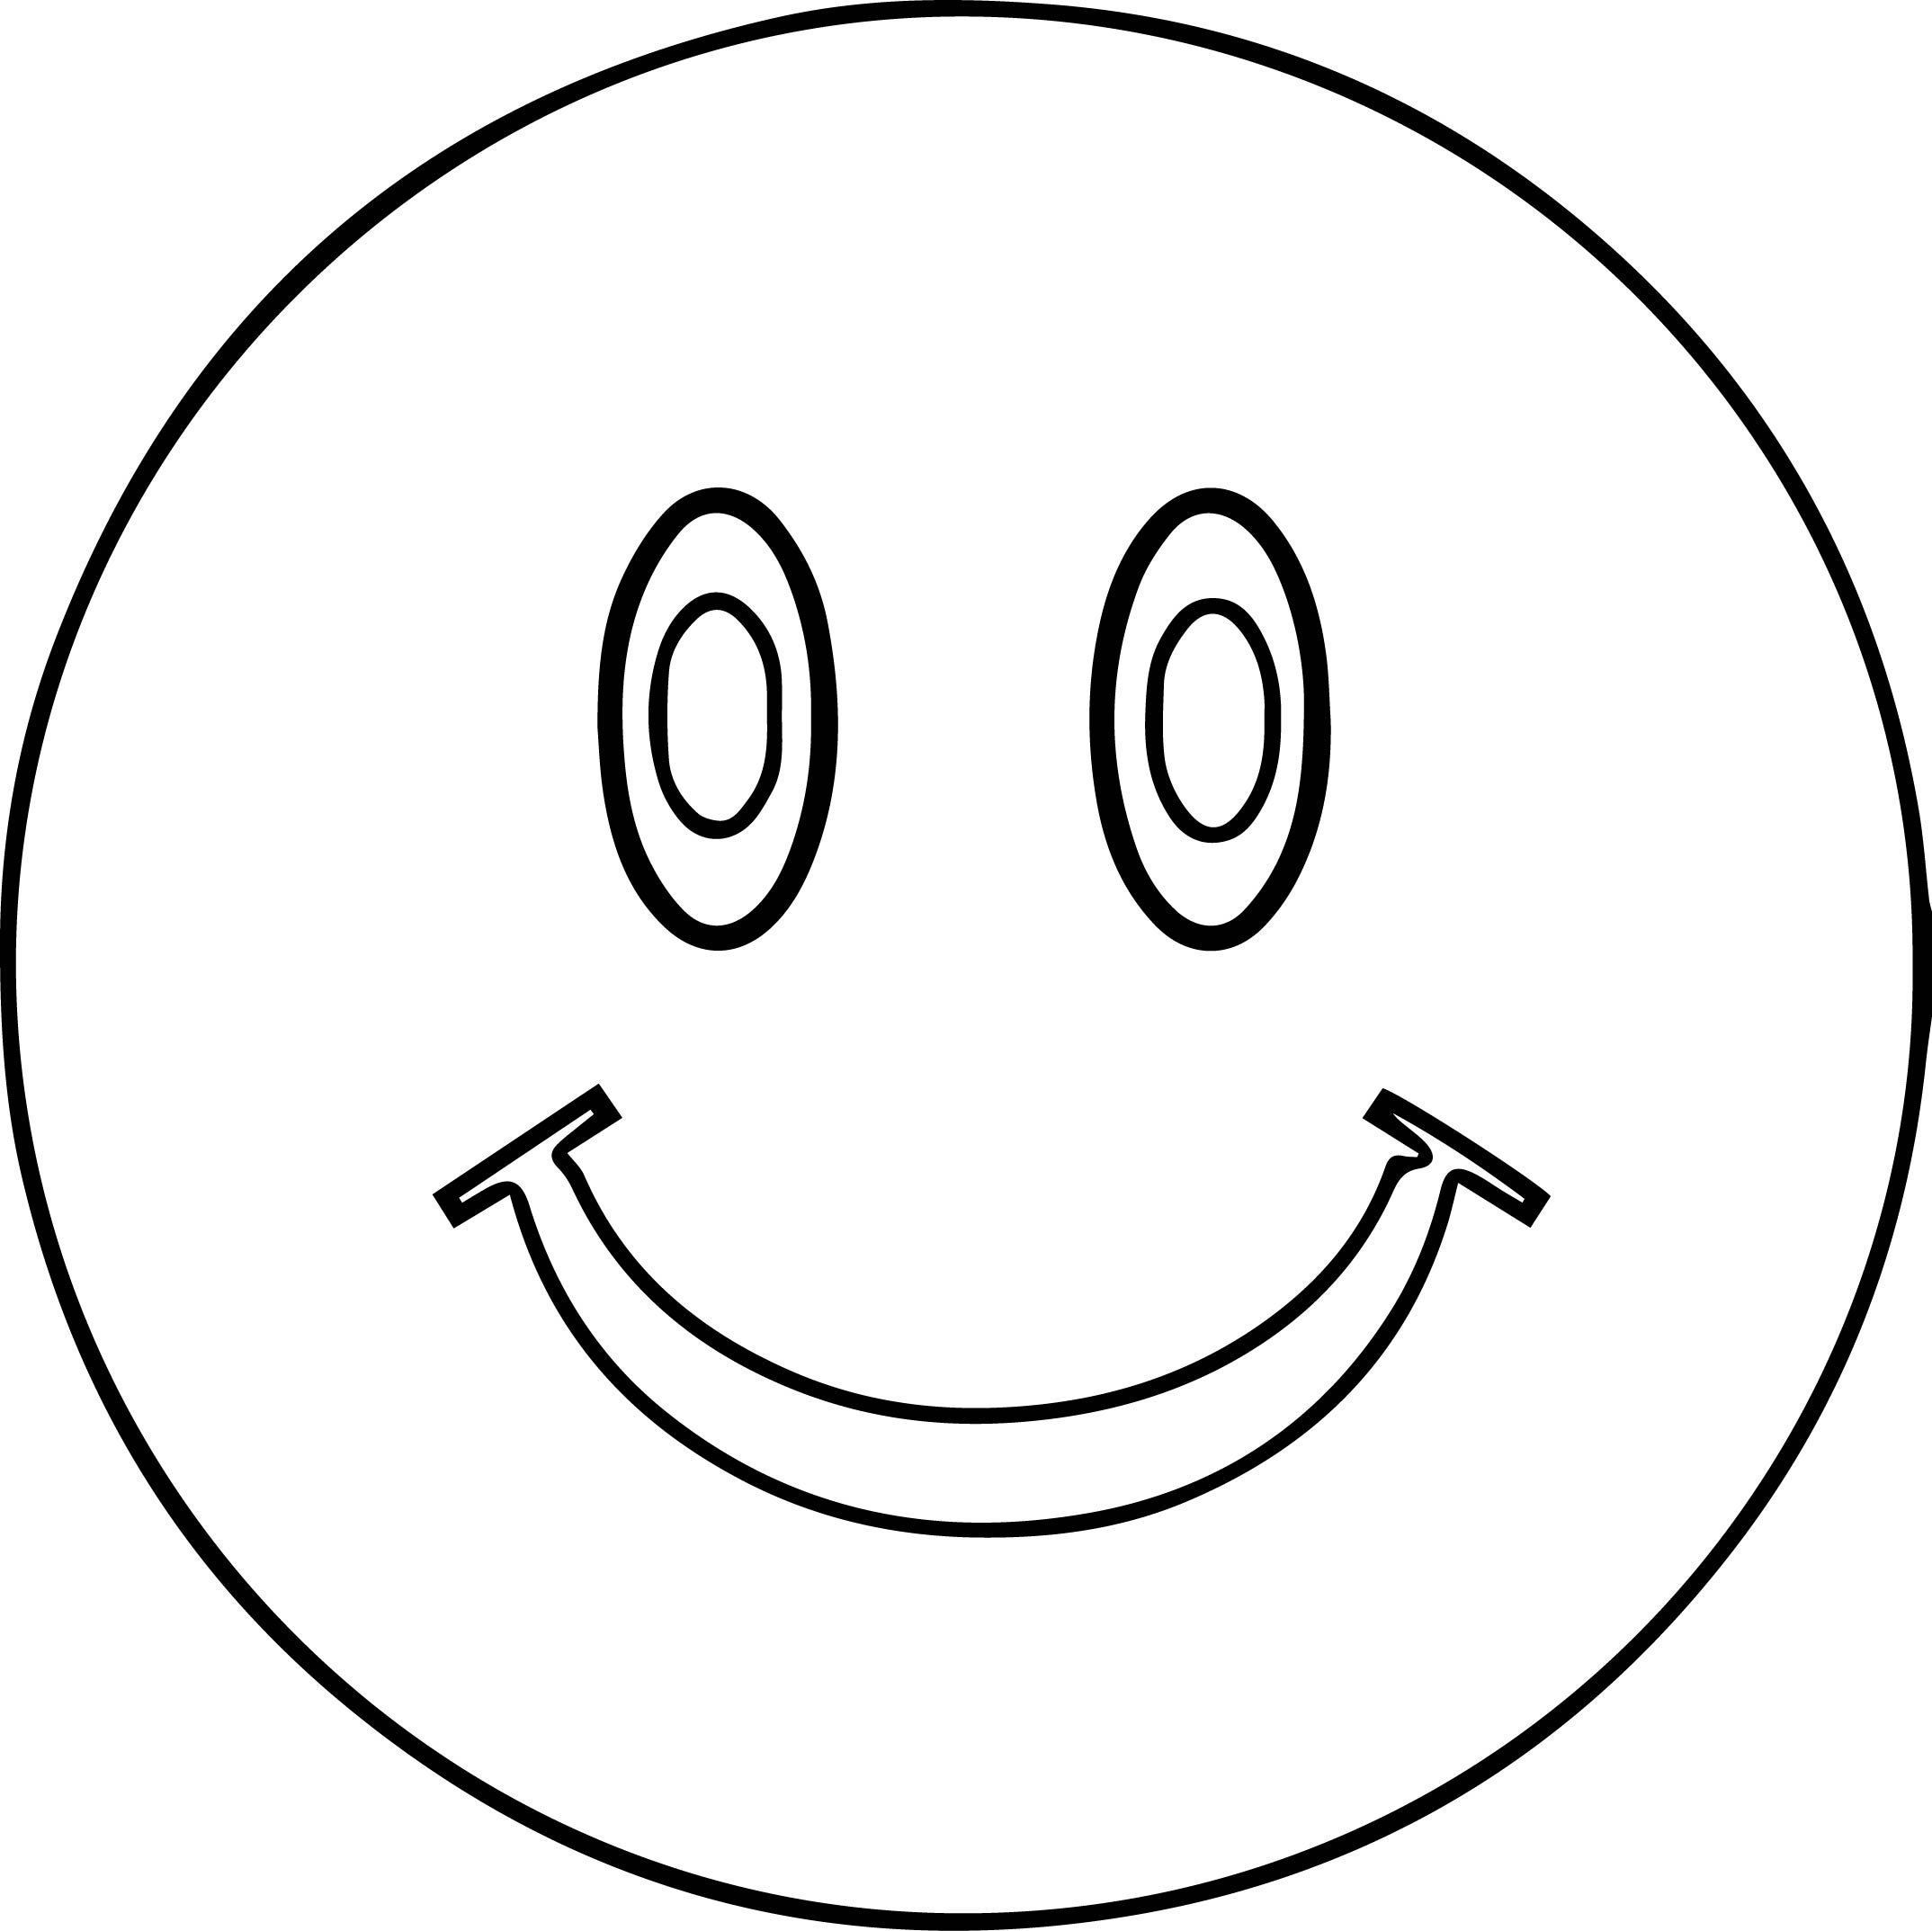 Face Zyioence Coloring Page